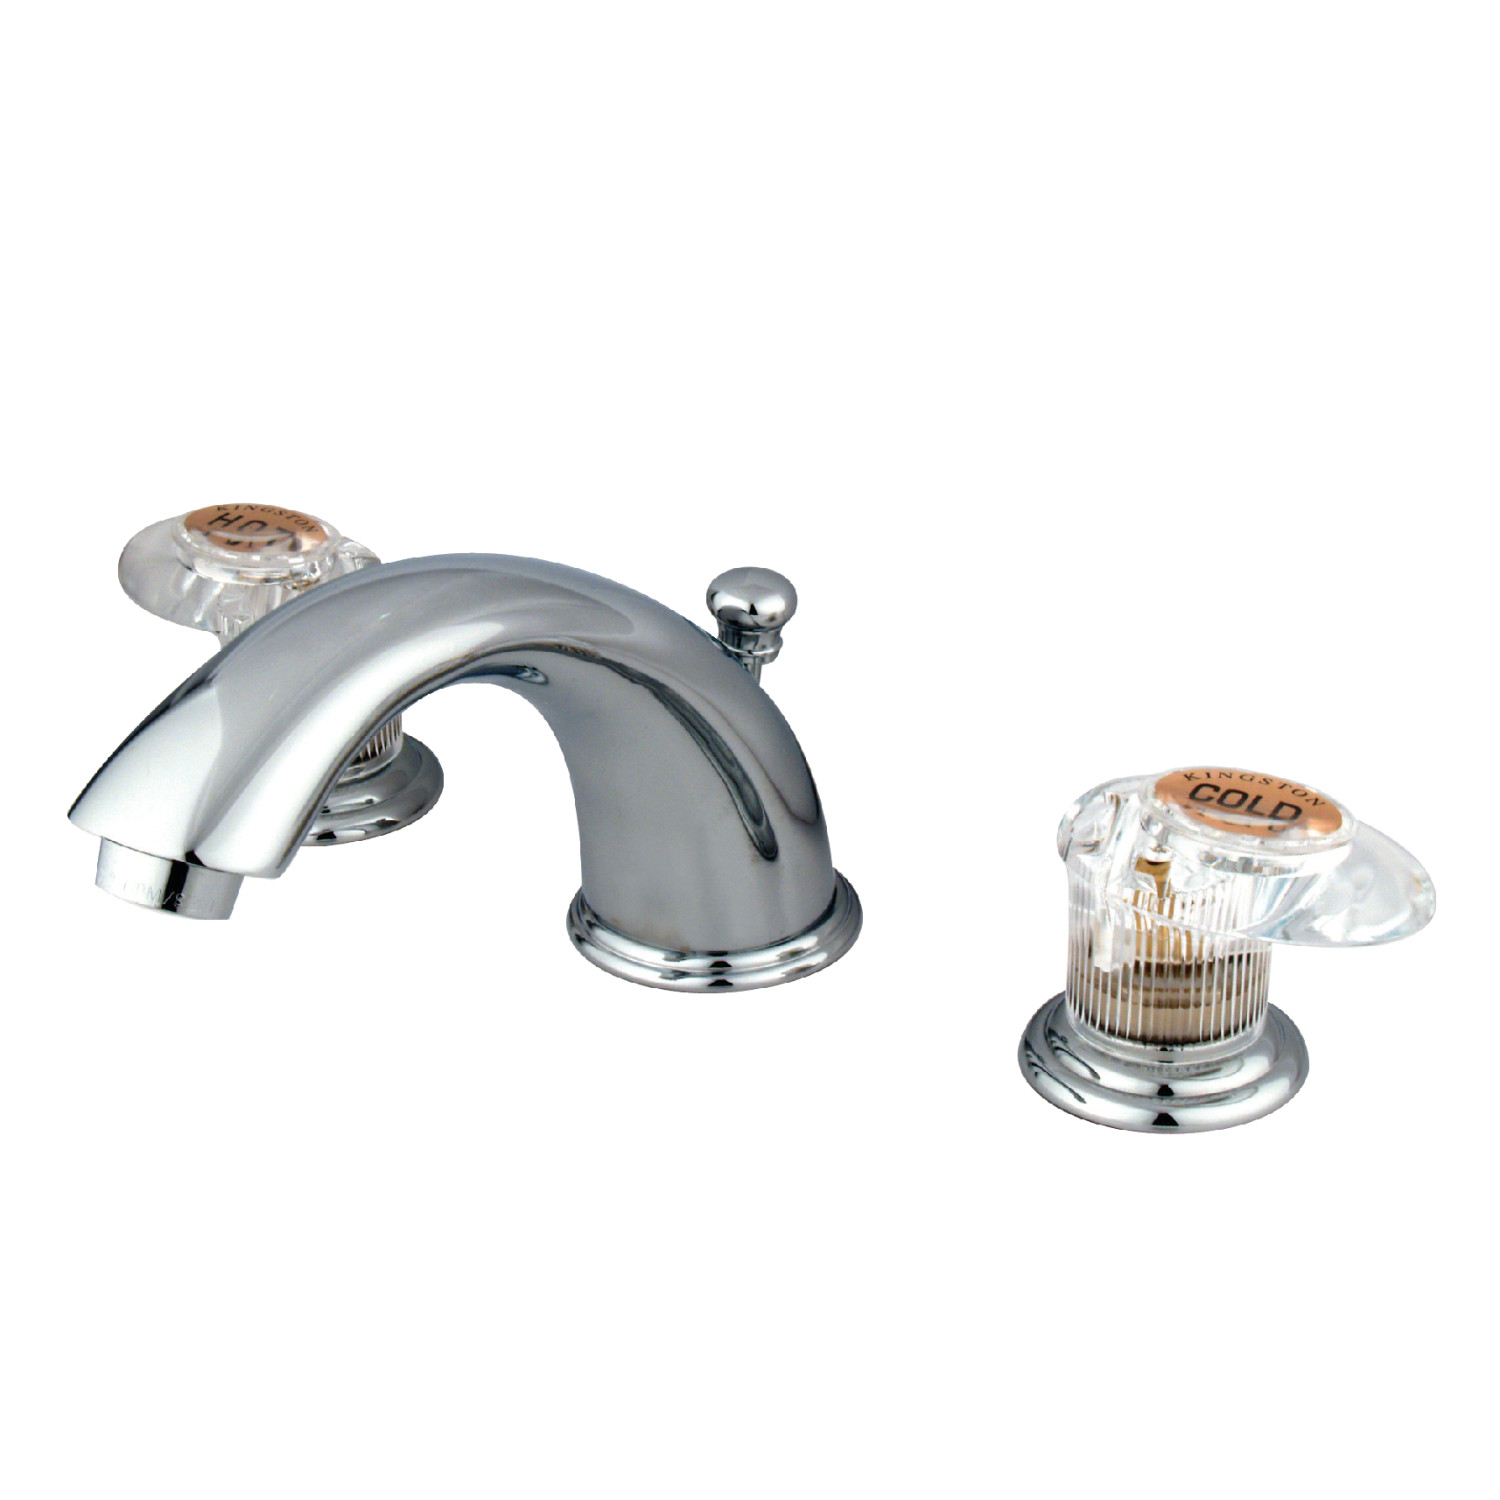 Traditional 2-Handle 3-Hole Deck Mounted Widespread Bathroom Faucet with Plastic Pop-Up in Polished Chrome with 4 Color Option